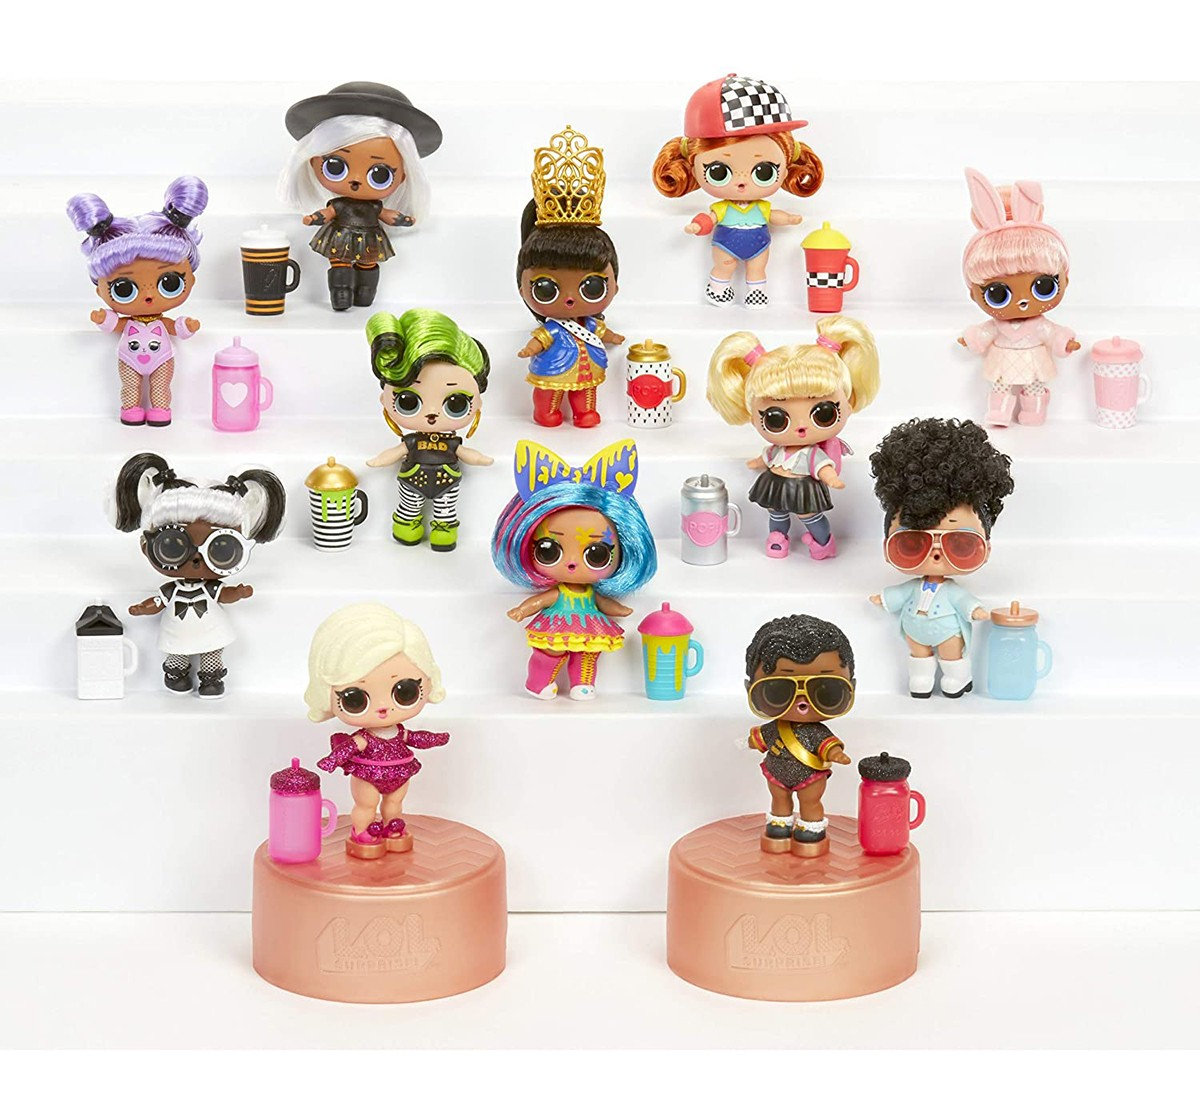 L.O.L  Surprise Hairgoals Collectible Dolls for Kids age 3Y+